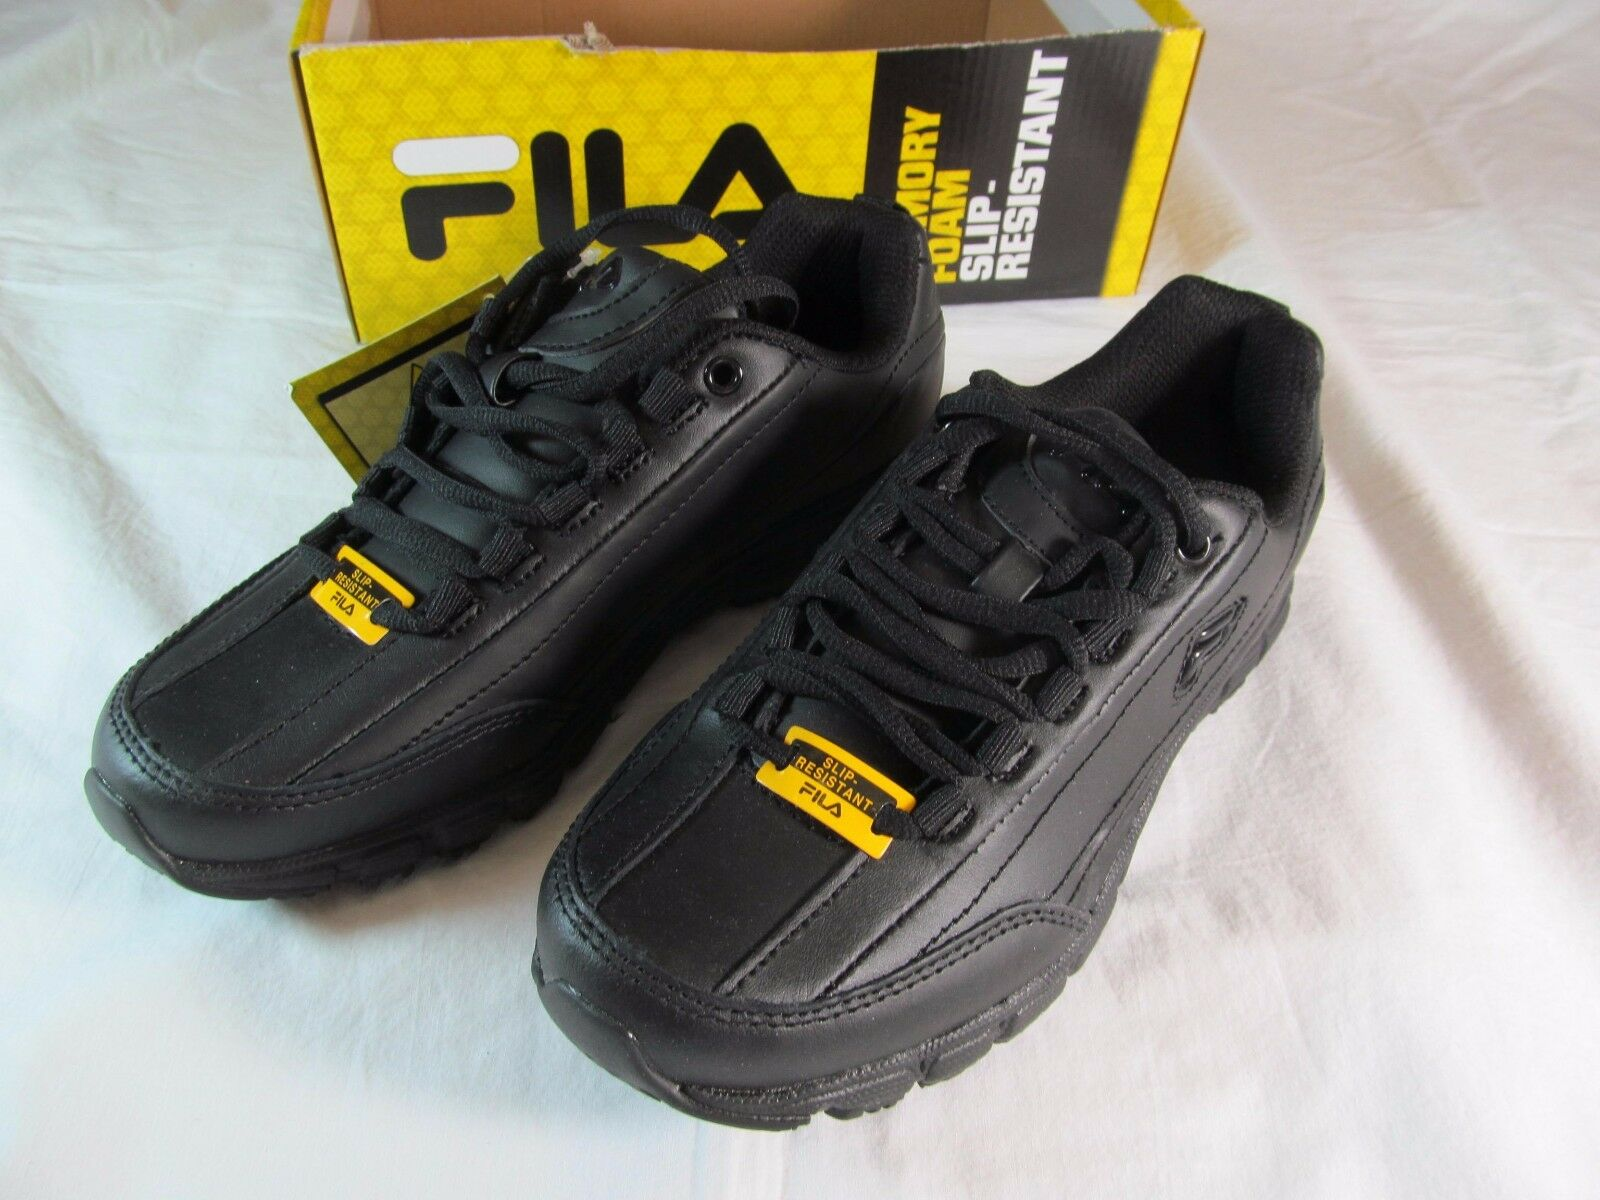 NWT Women's FILA BLACK LEATHER RUNNING ATHLETIC SHOES, Comfortable Great discount